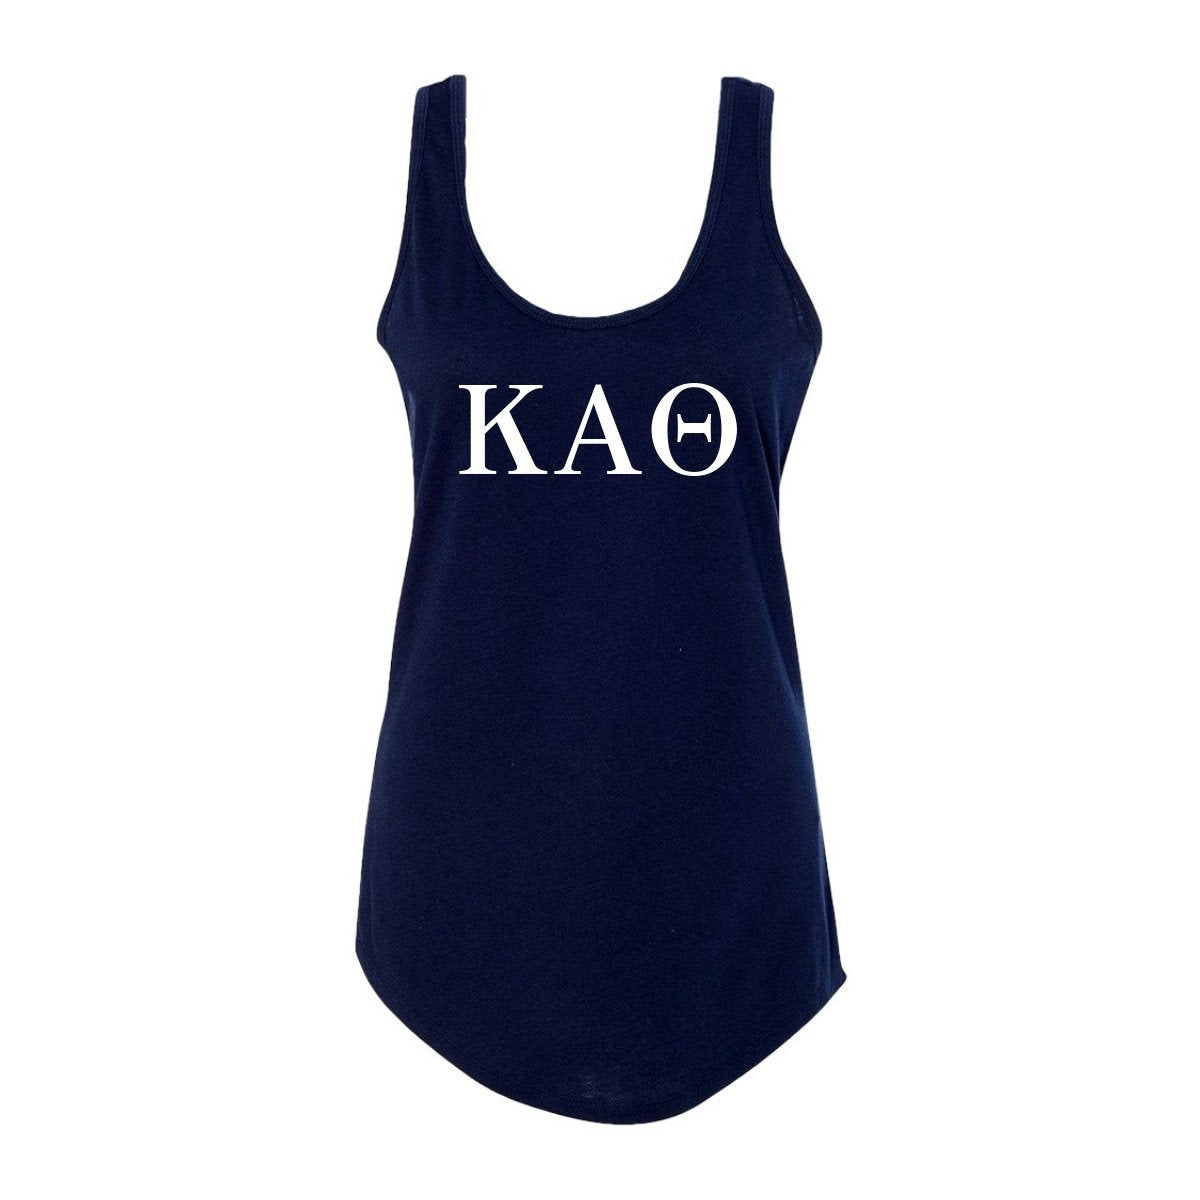 Navy Blue Kappa Alpha Theta Tank top with Large Greek Letters on front. Perfect sorority tank top for swimsuit coverup or oversized nightshirt.